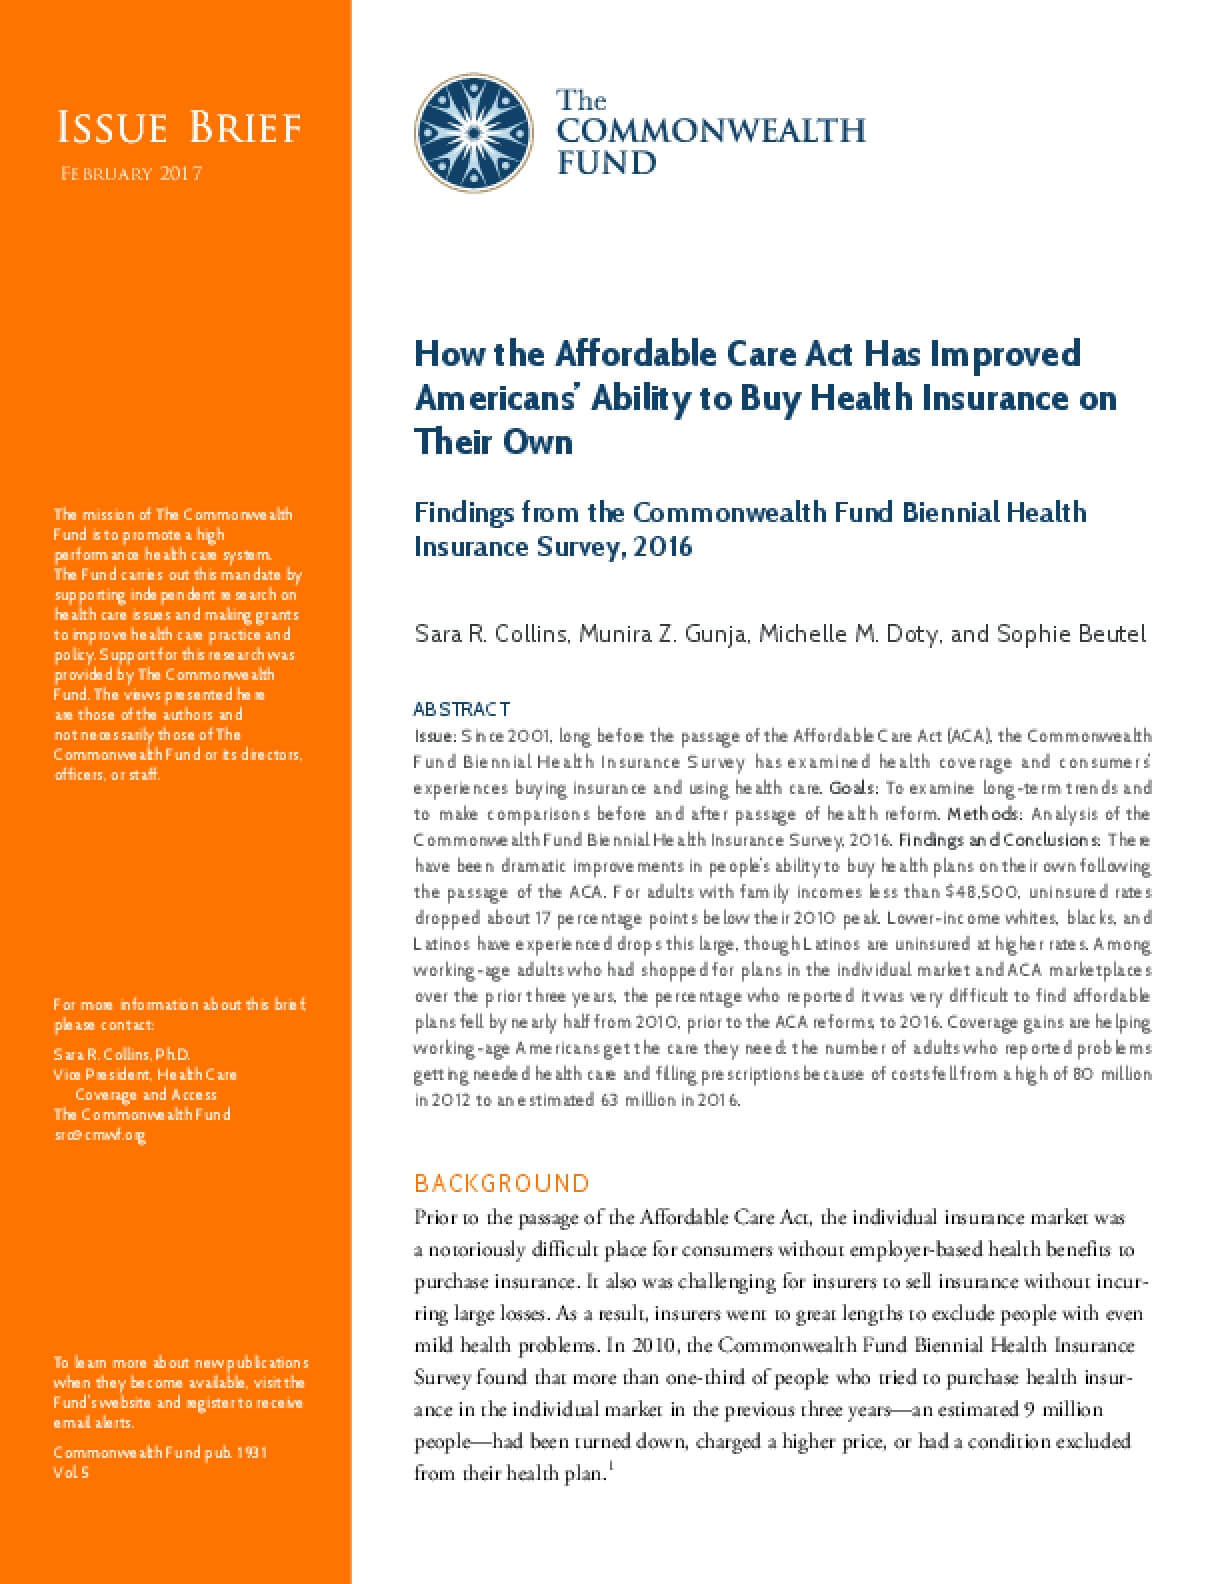 How the Affordable Care Act Has Improved Americans' Ability to Buy Health Insurance on Their Own: Findings from the Commonwealth Fund Biennial Health Insurance Survey, 2016